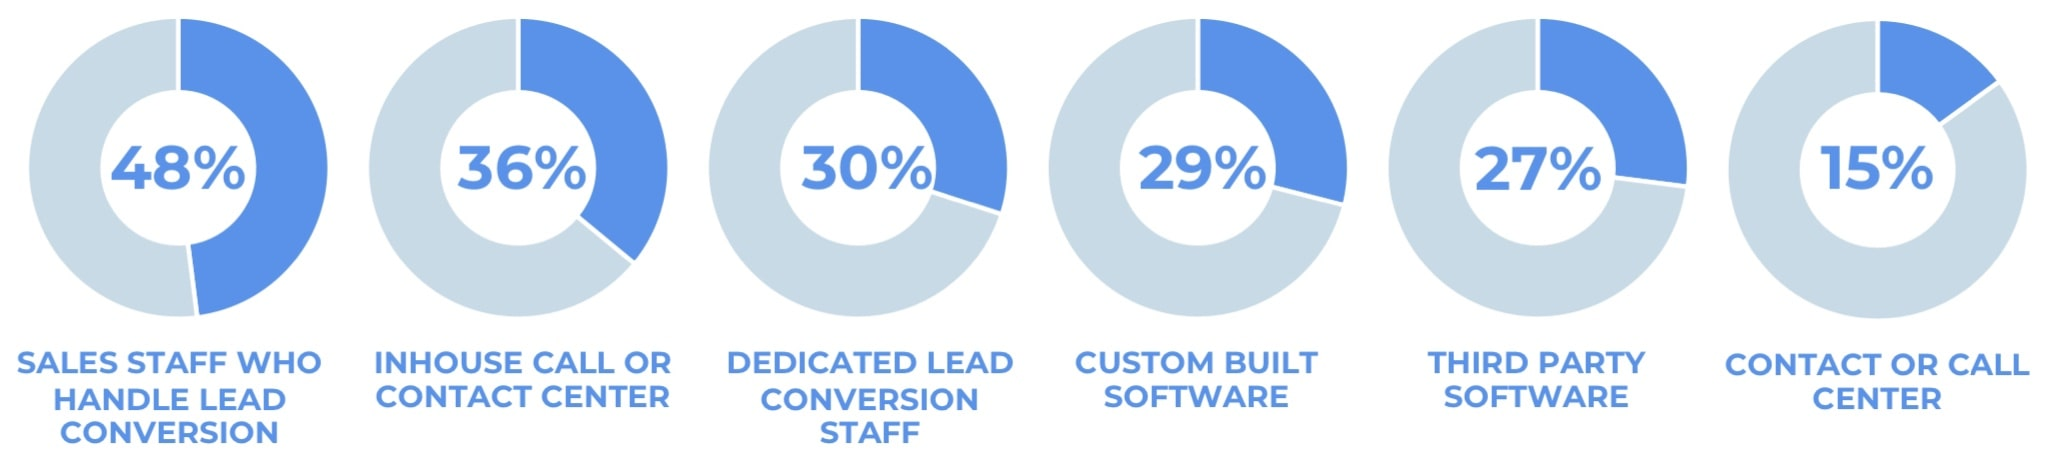 Lead conversion solutions currently in place. 48% had sales staff handling lead conversion, 36% had an in-house call or contact centre, 30% had dedicated lead conversion staff, 29% had custom-built software, 27% had third-party software, 15% had a contact or call centre.